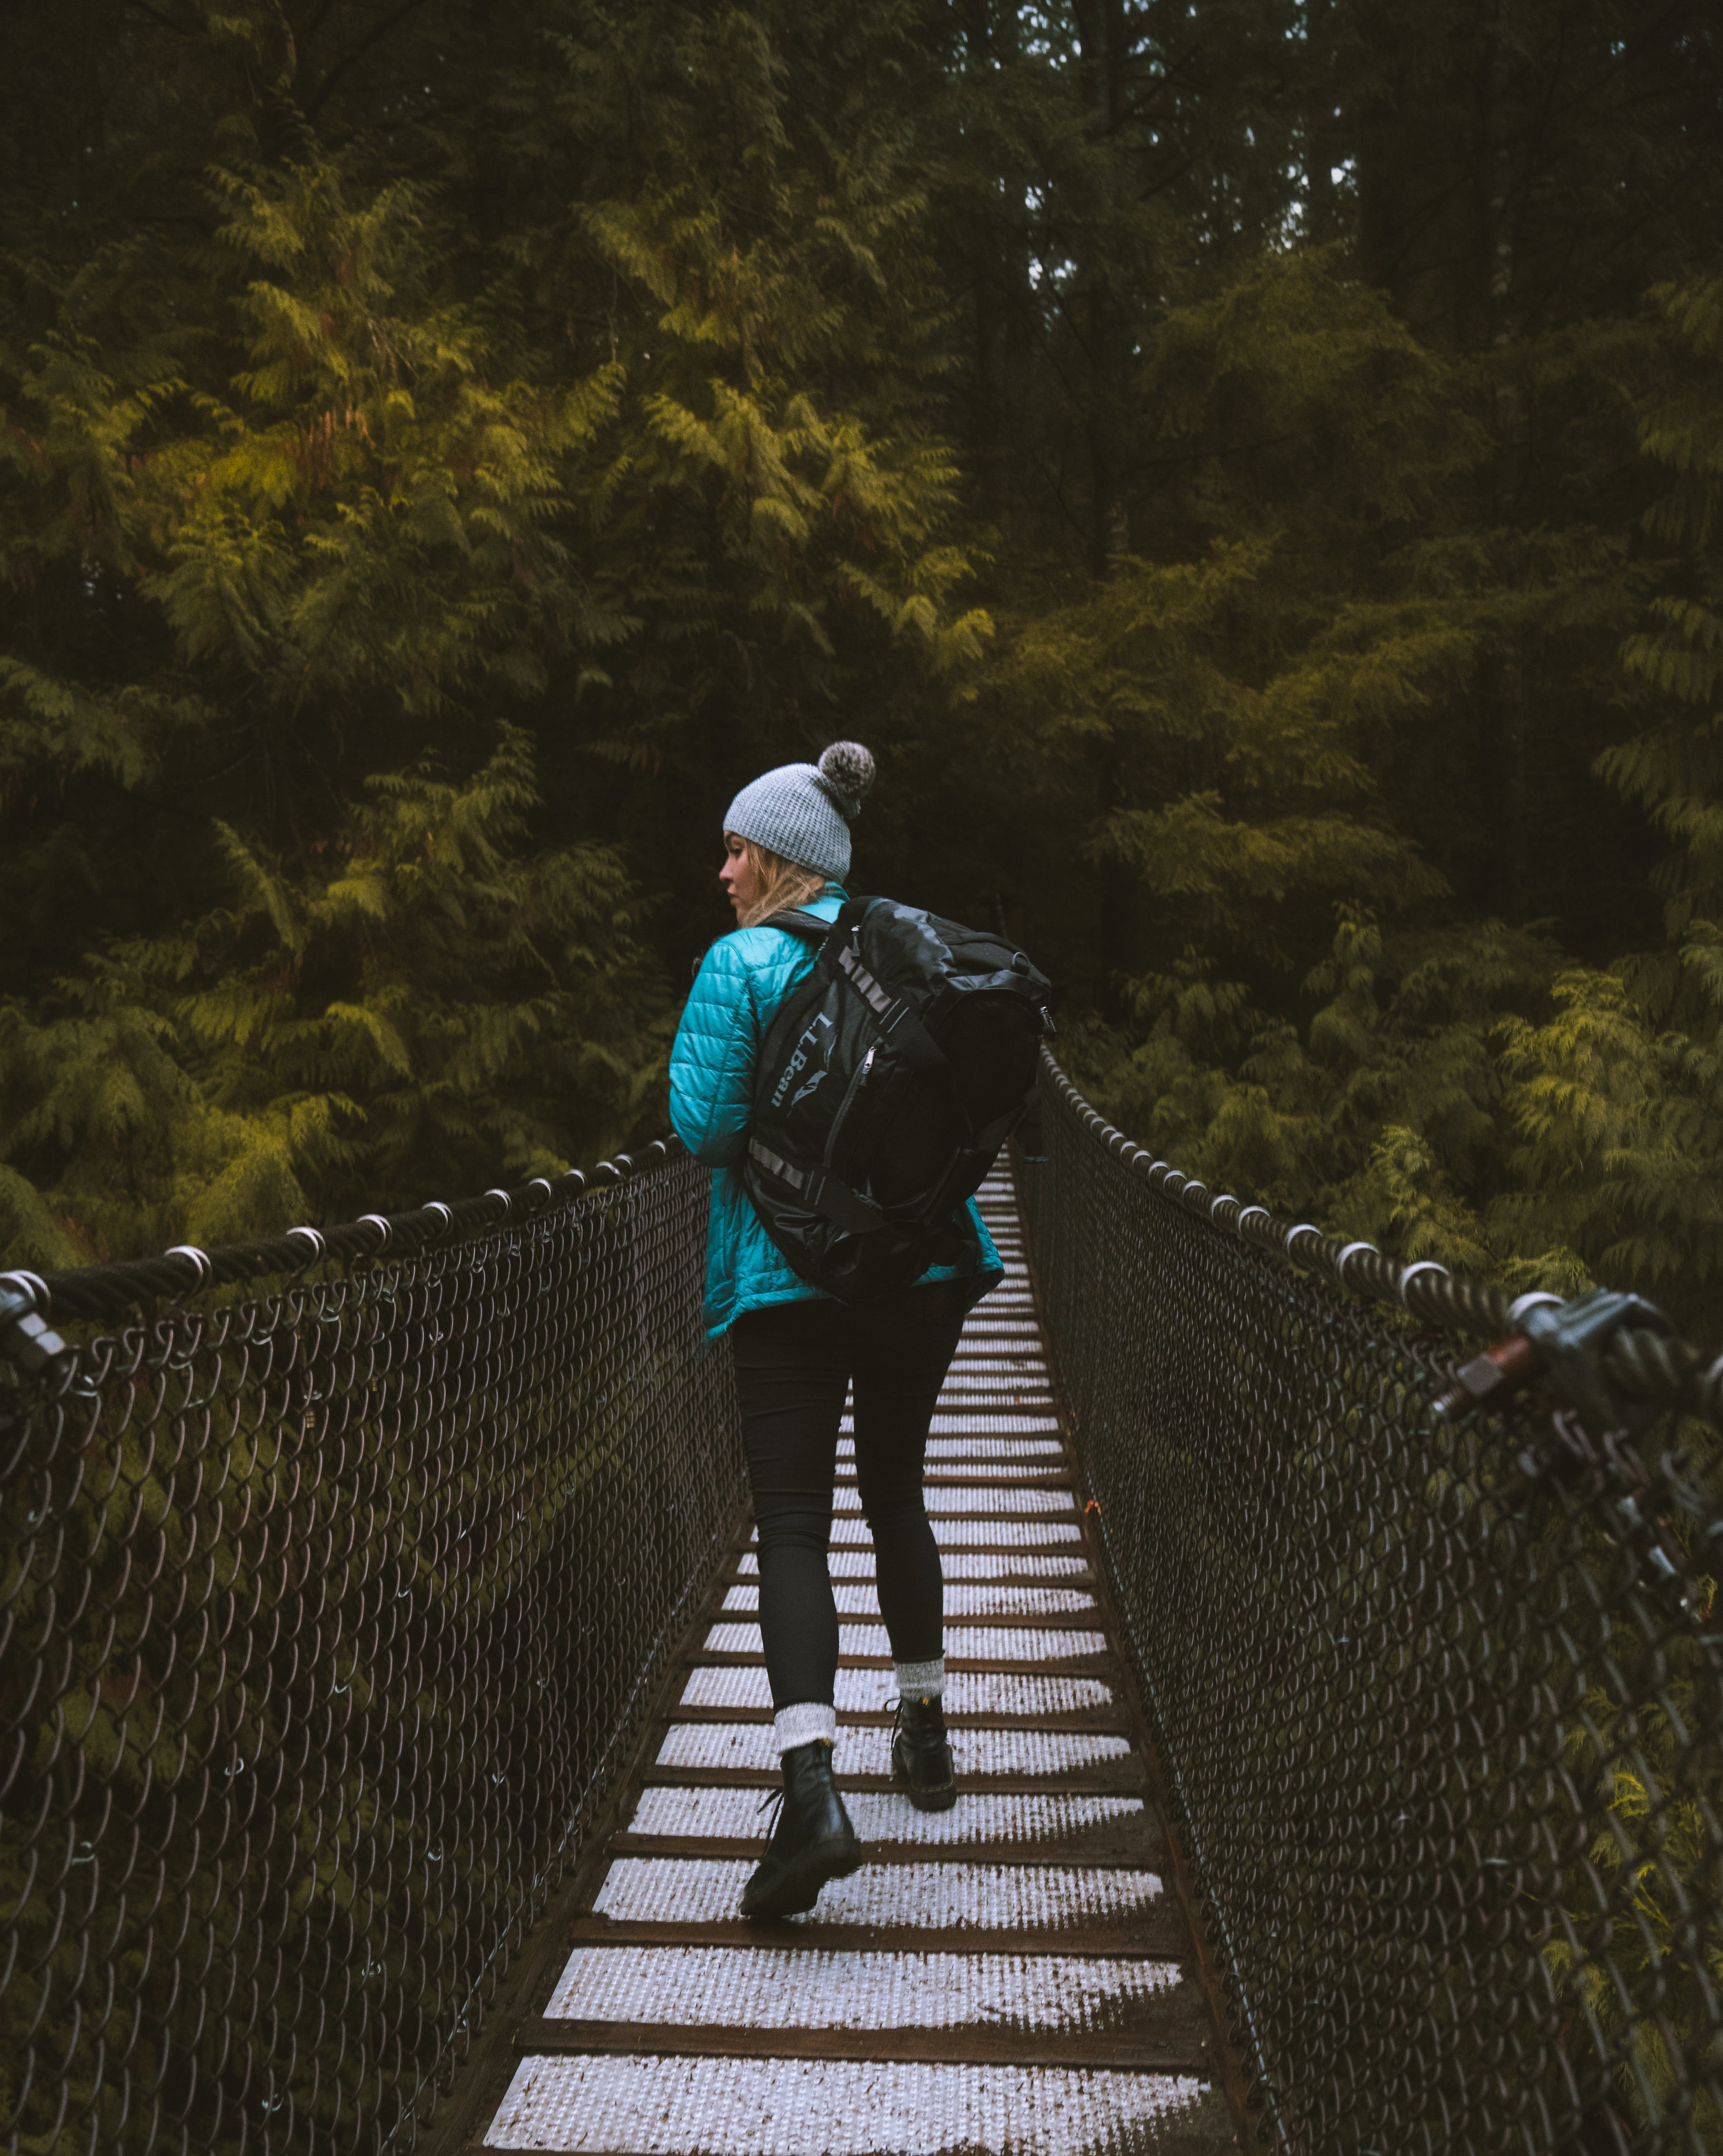 Vancouver-BC-Canada-Travel-Product-Adventure-Commercial-Photographer-Emma-Rae.jpg